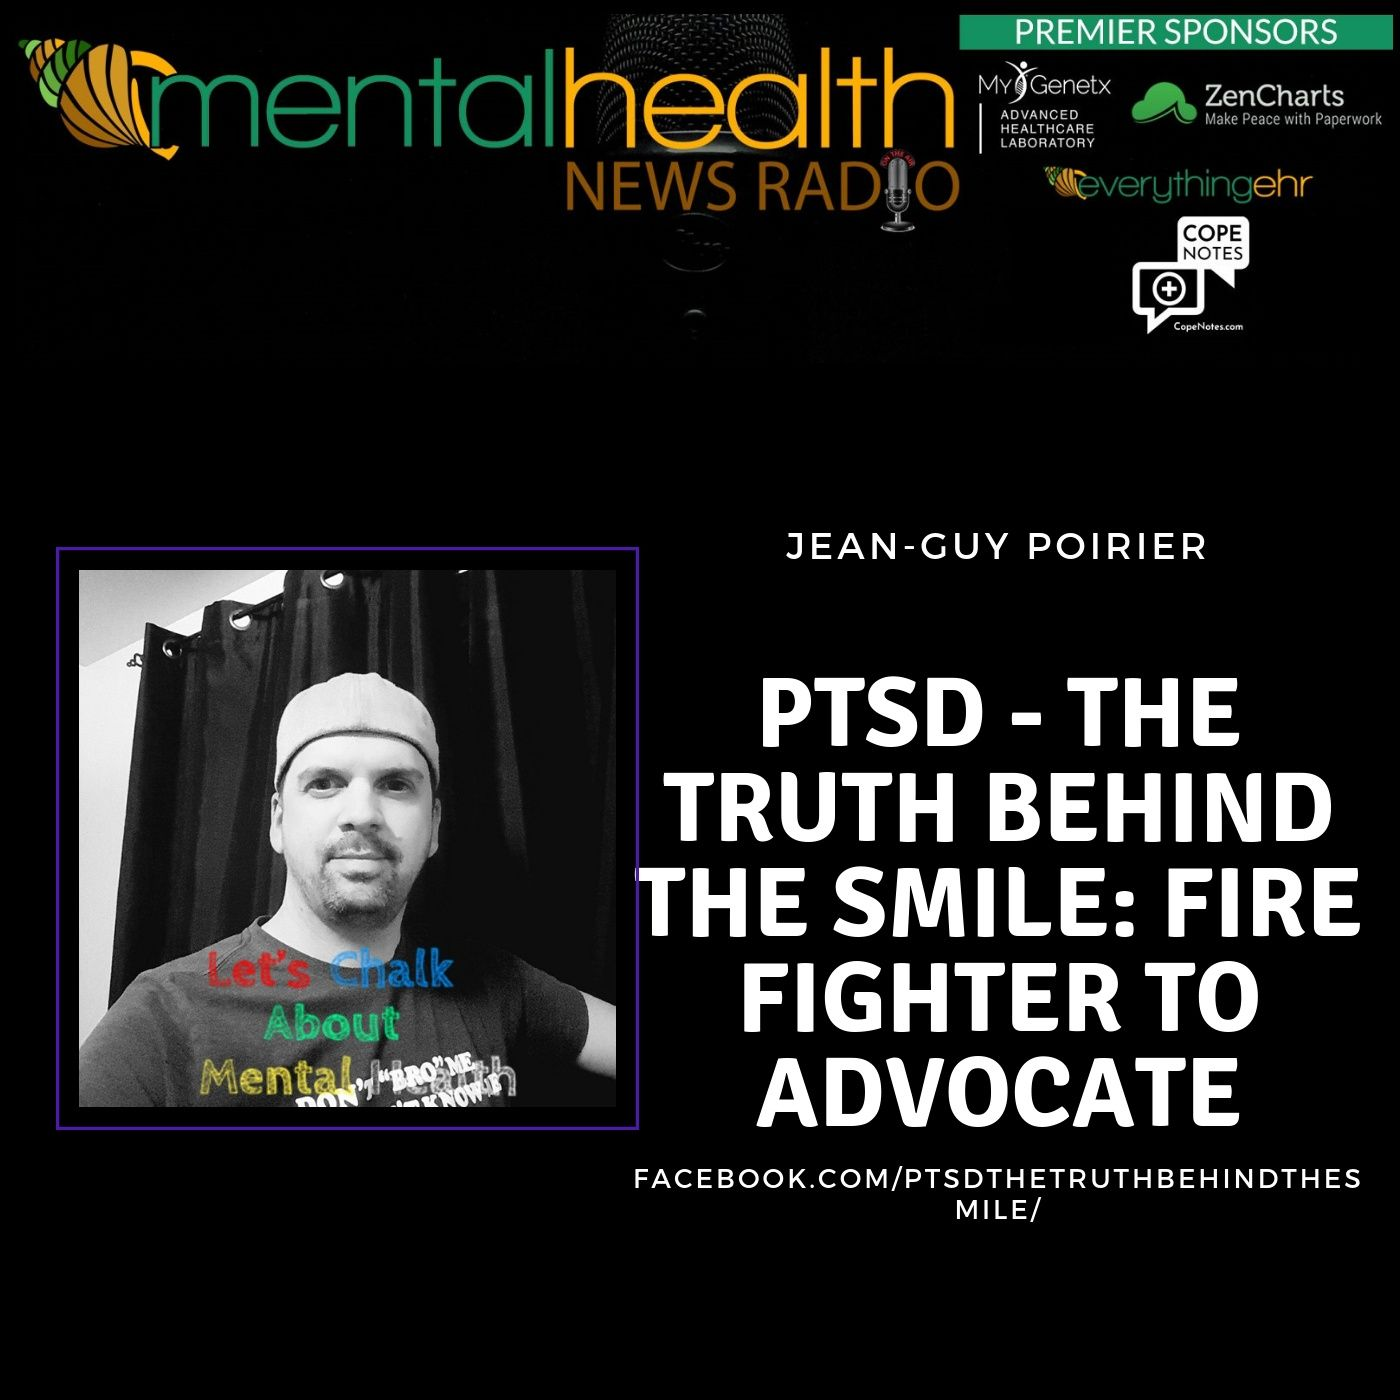 Mental Health News Radio - PTSD - The Truth Behind the Smile: Fire Fighter to Advocate with Jean-Guy Poirier